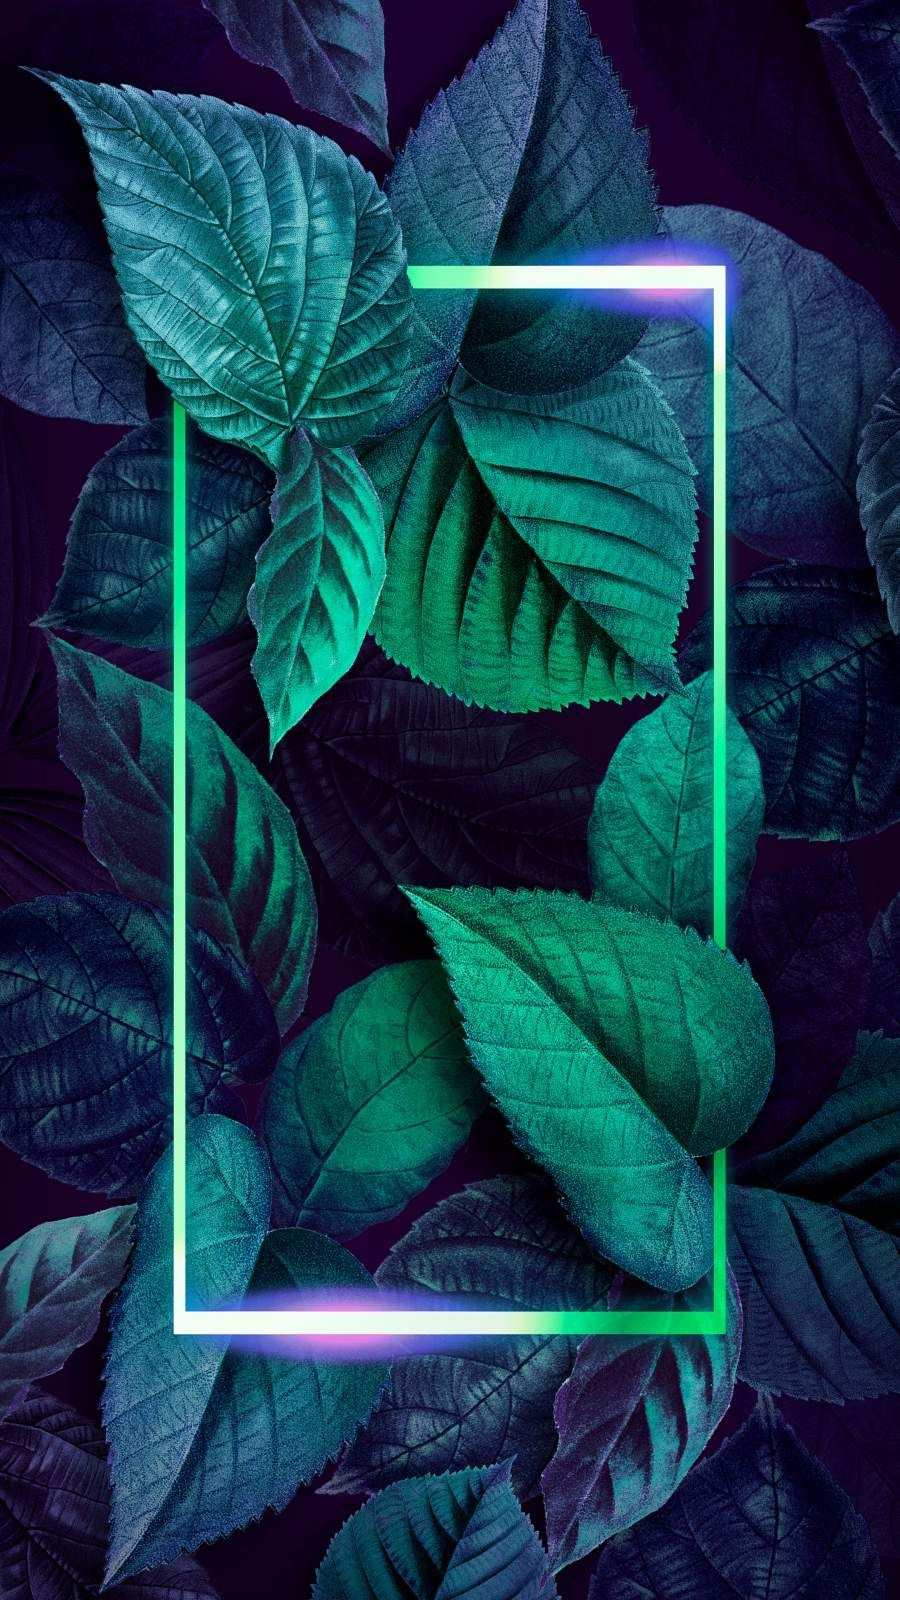 Neon Foliage Nature Art iPhone Wallpaper - iPhone Wallpapers